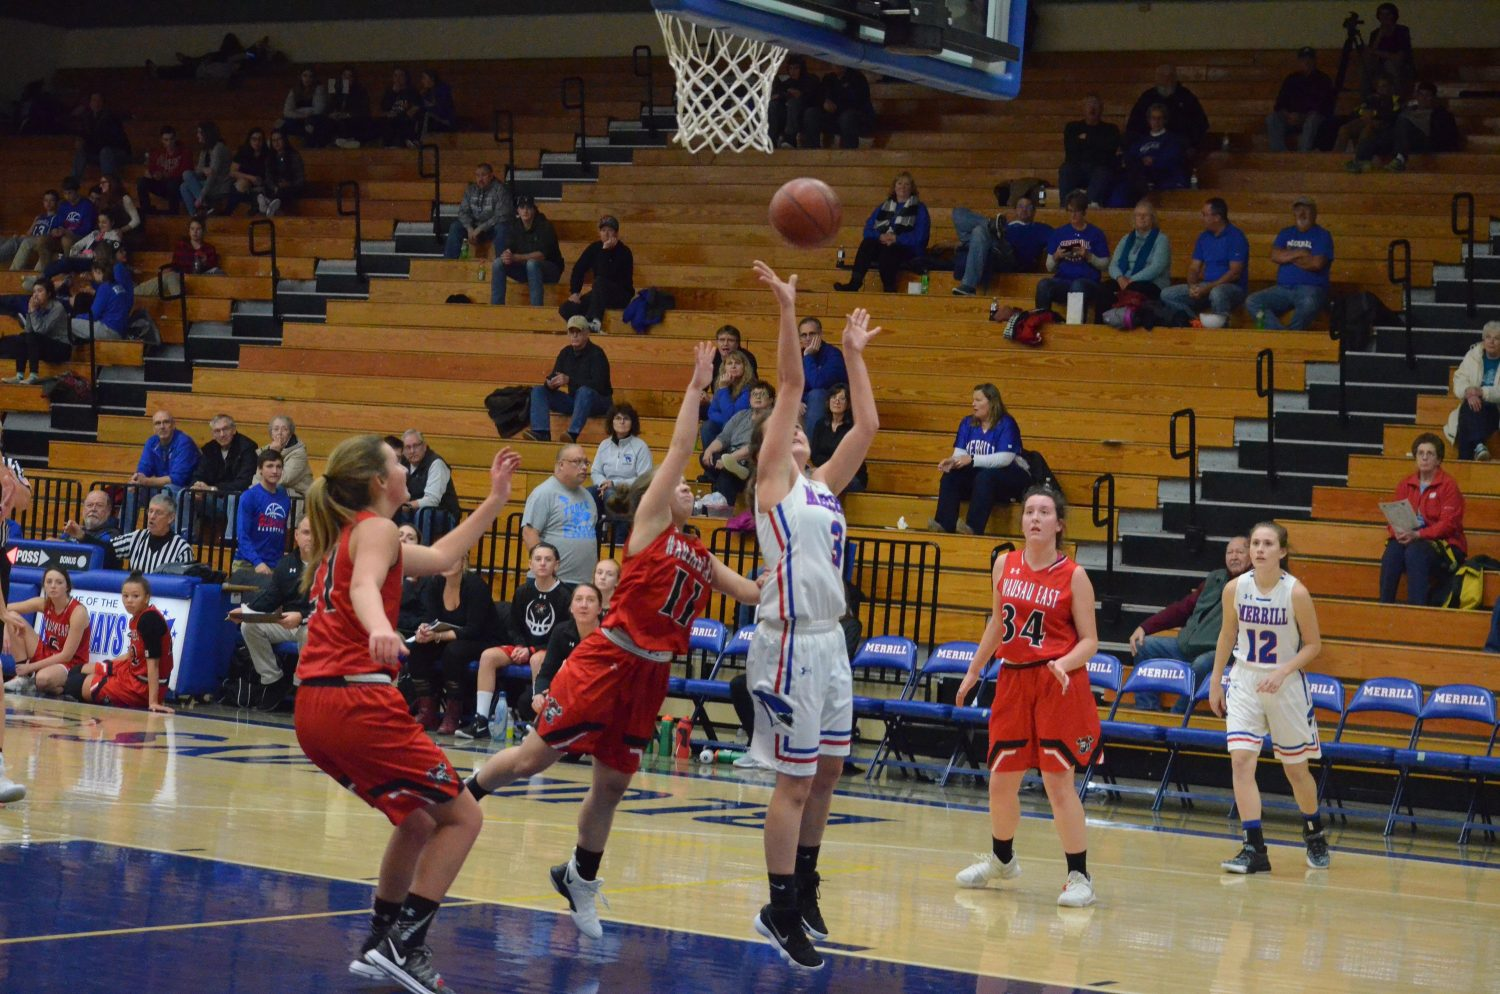 Pictured is Maddix Bonnell as she makes a layup after Madi Weix dishes her the ball.